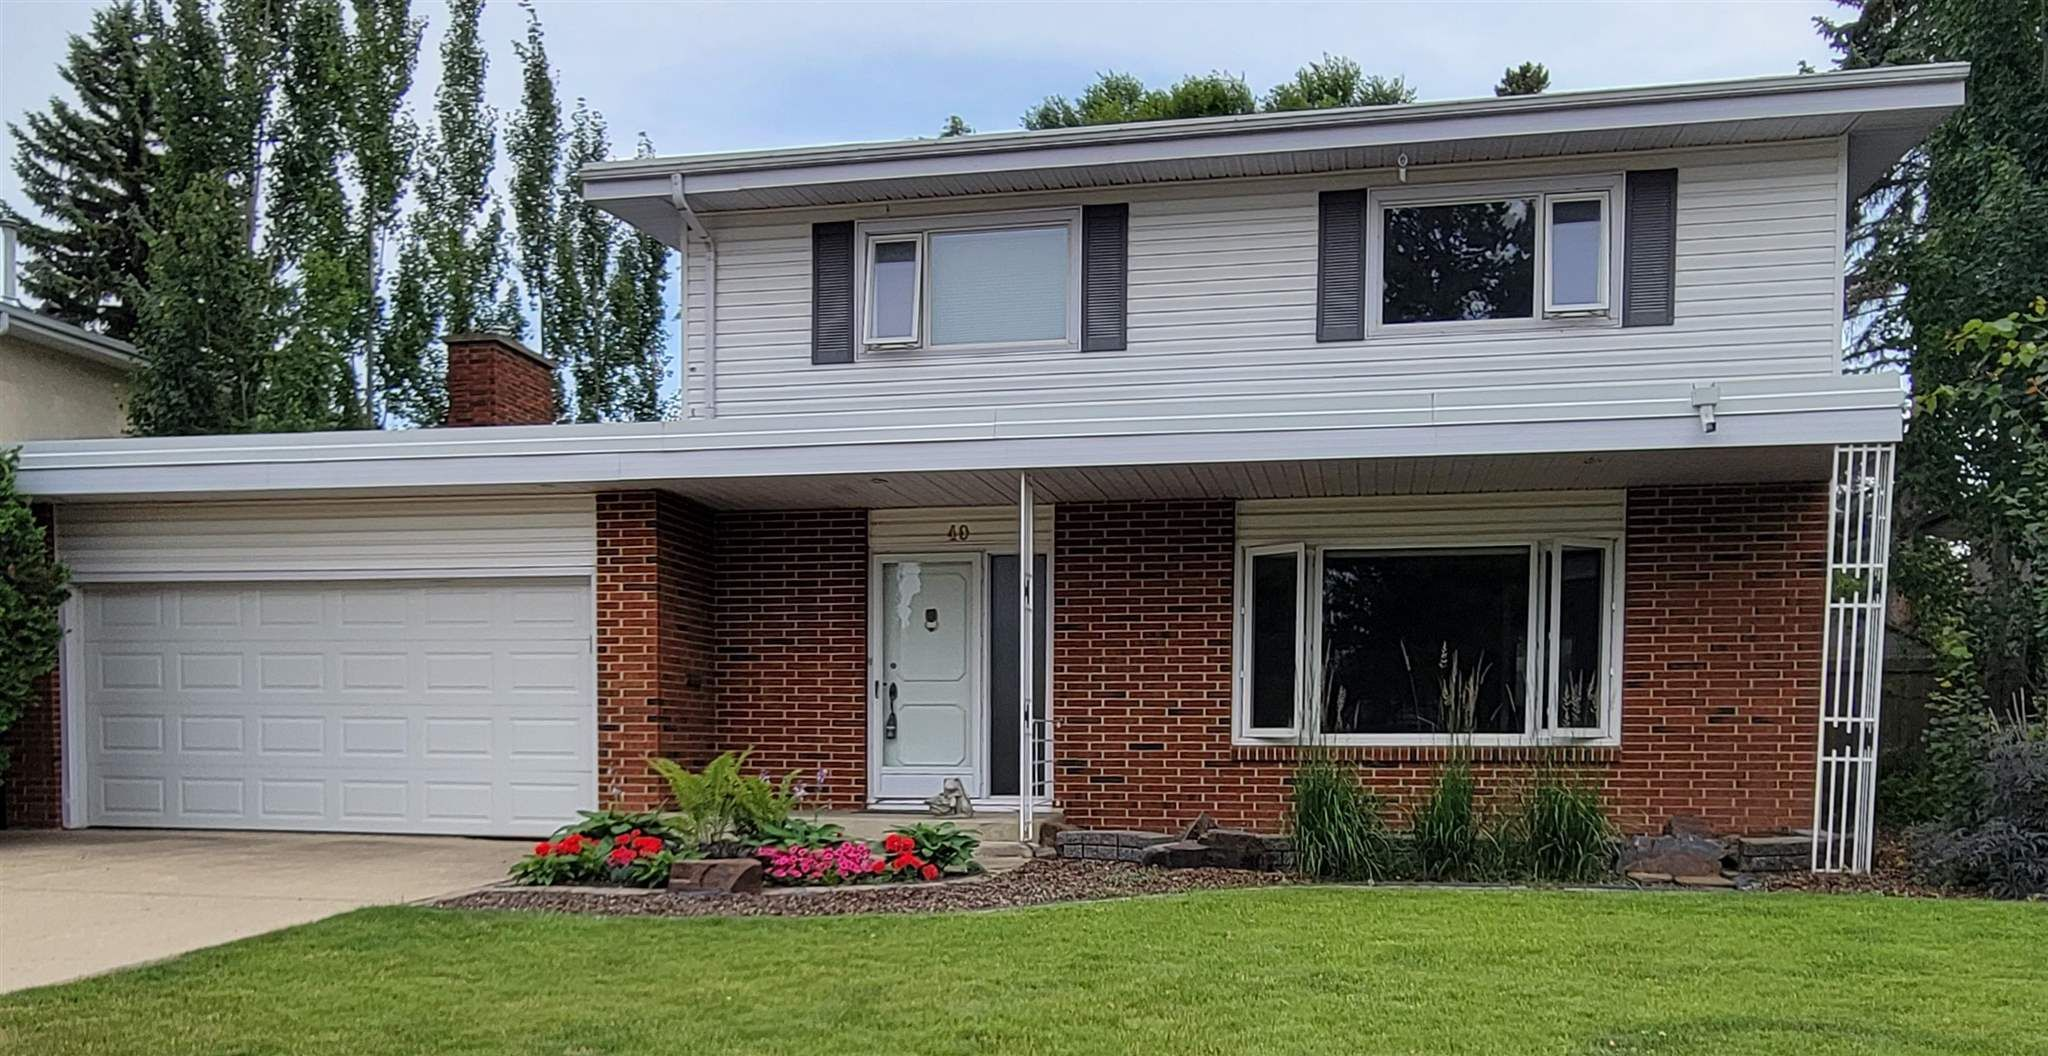 Main Photo: 40 VALLEYVIEW Crescent in Edmonton: Zone 10 House for sale : MLS®# E4248629